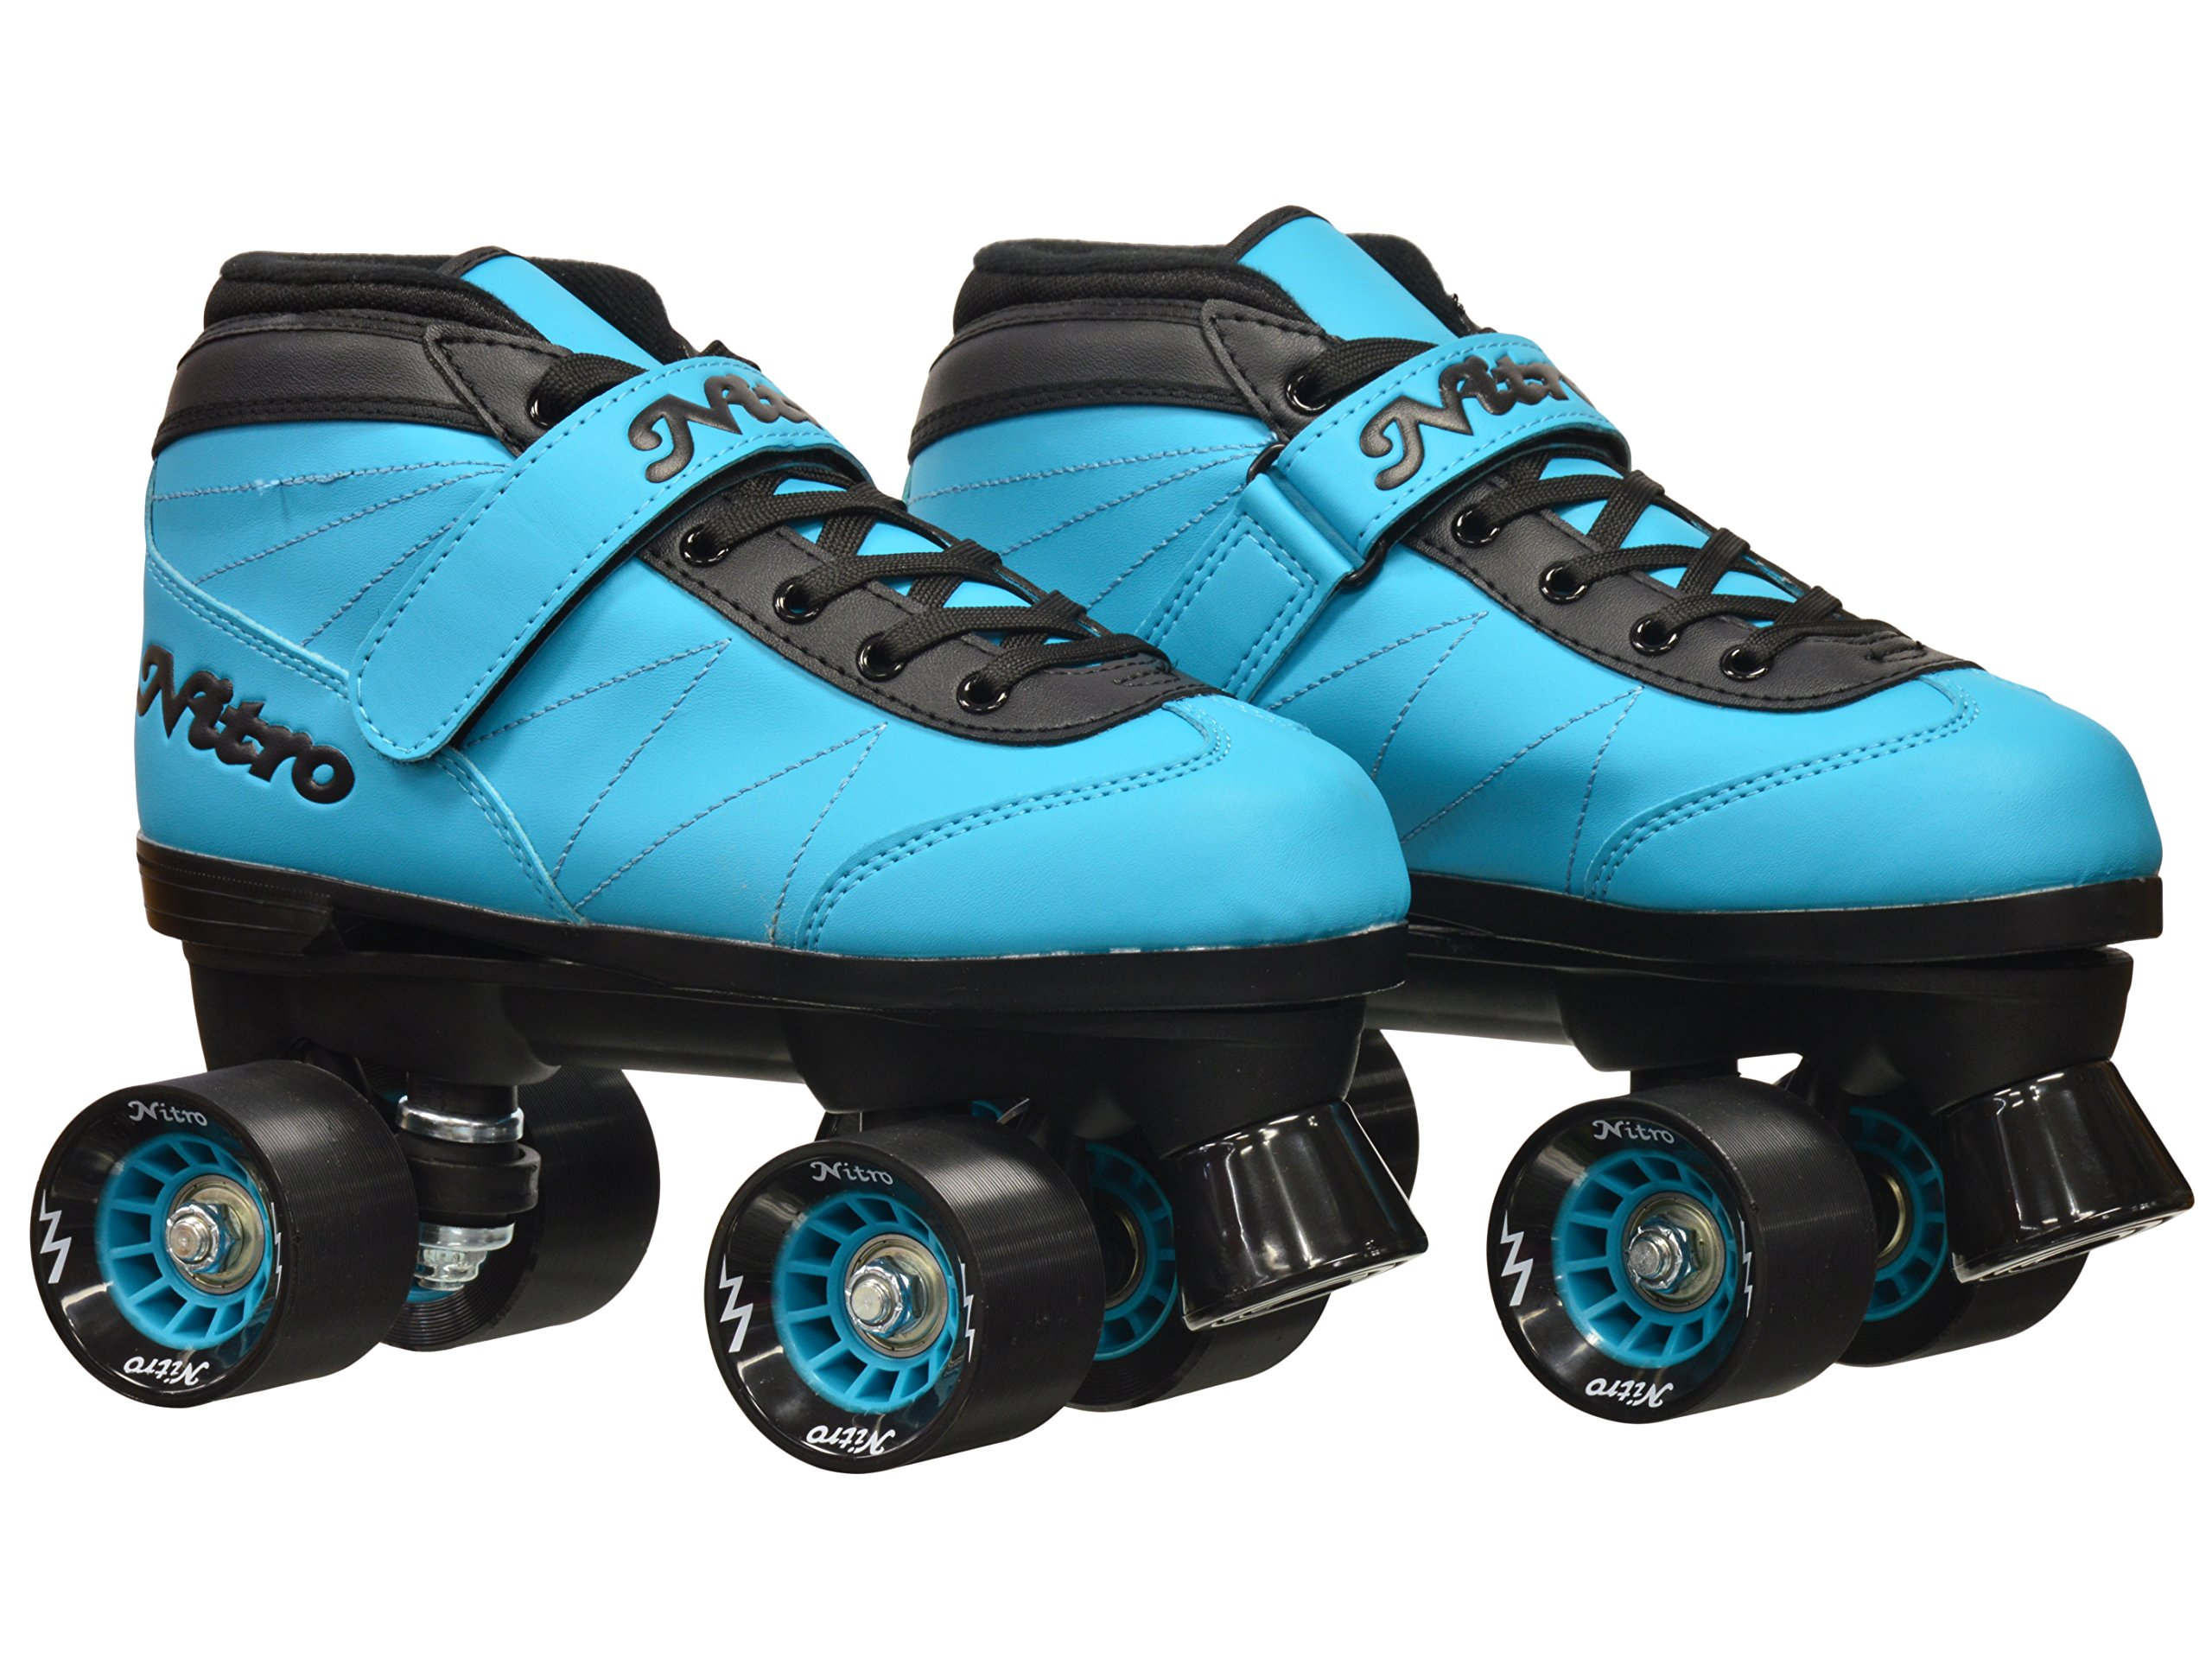 New! Epic Nitro Turbo Blue Indoor / Outdoor Quad Roller Speed Skates w/ 2 Pair of Laces (Blue & Black) (Mens 9) by Epic Skates (Image #2)